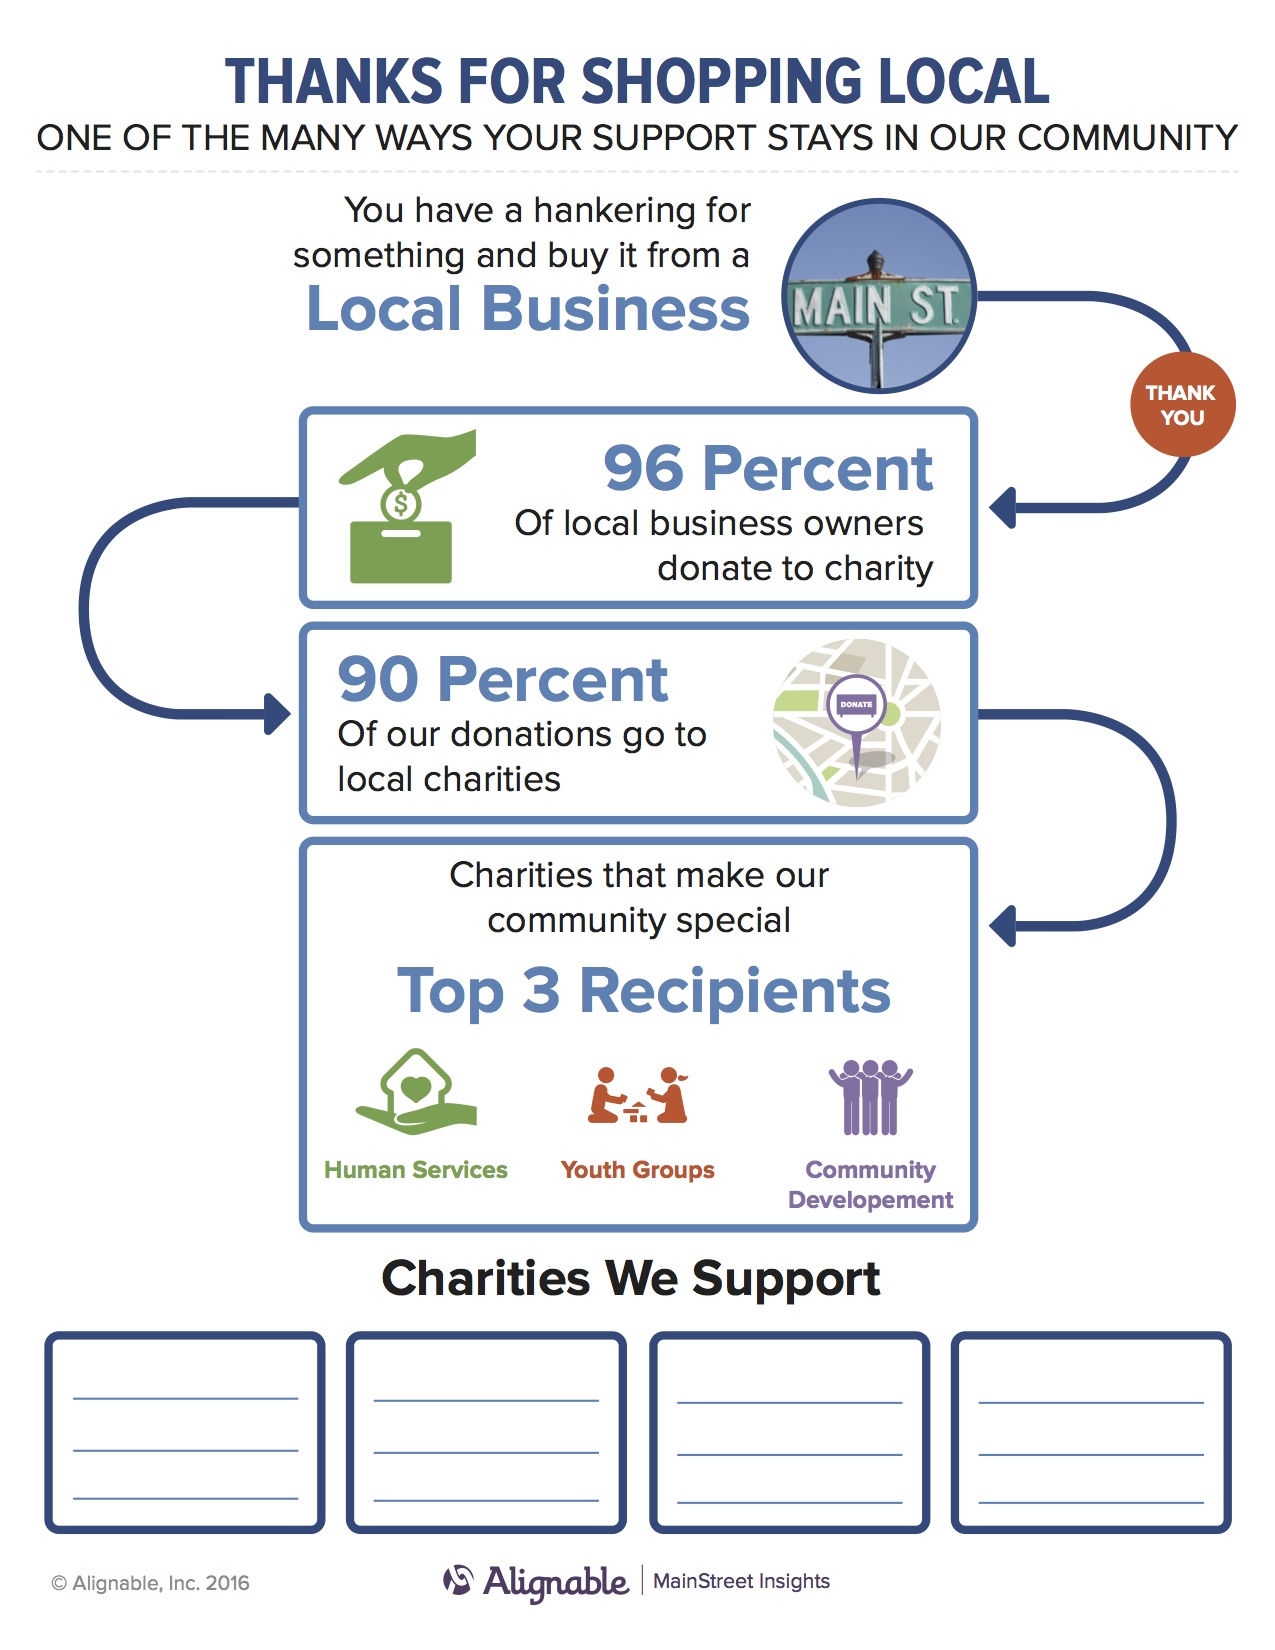 Alignable - Living and Giving Locally in 2016